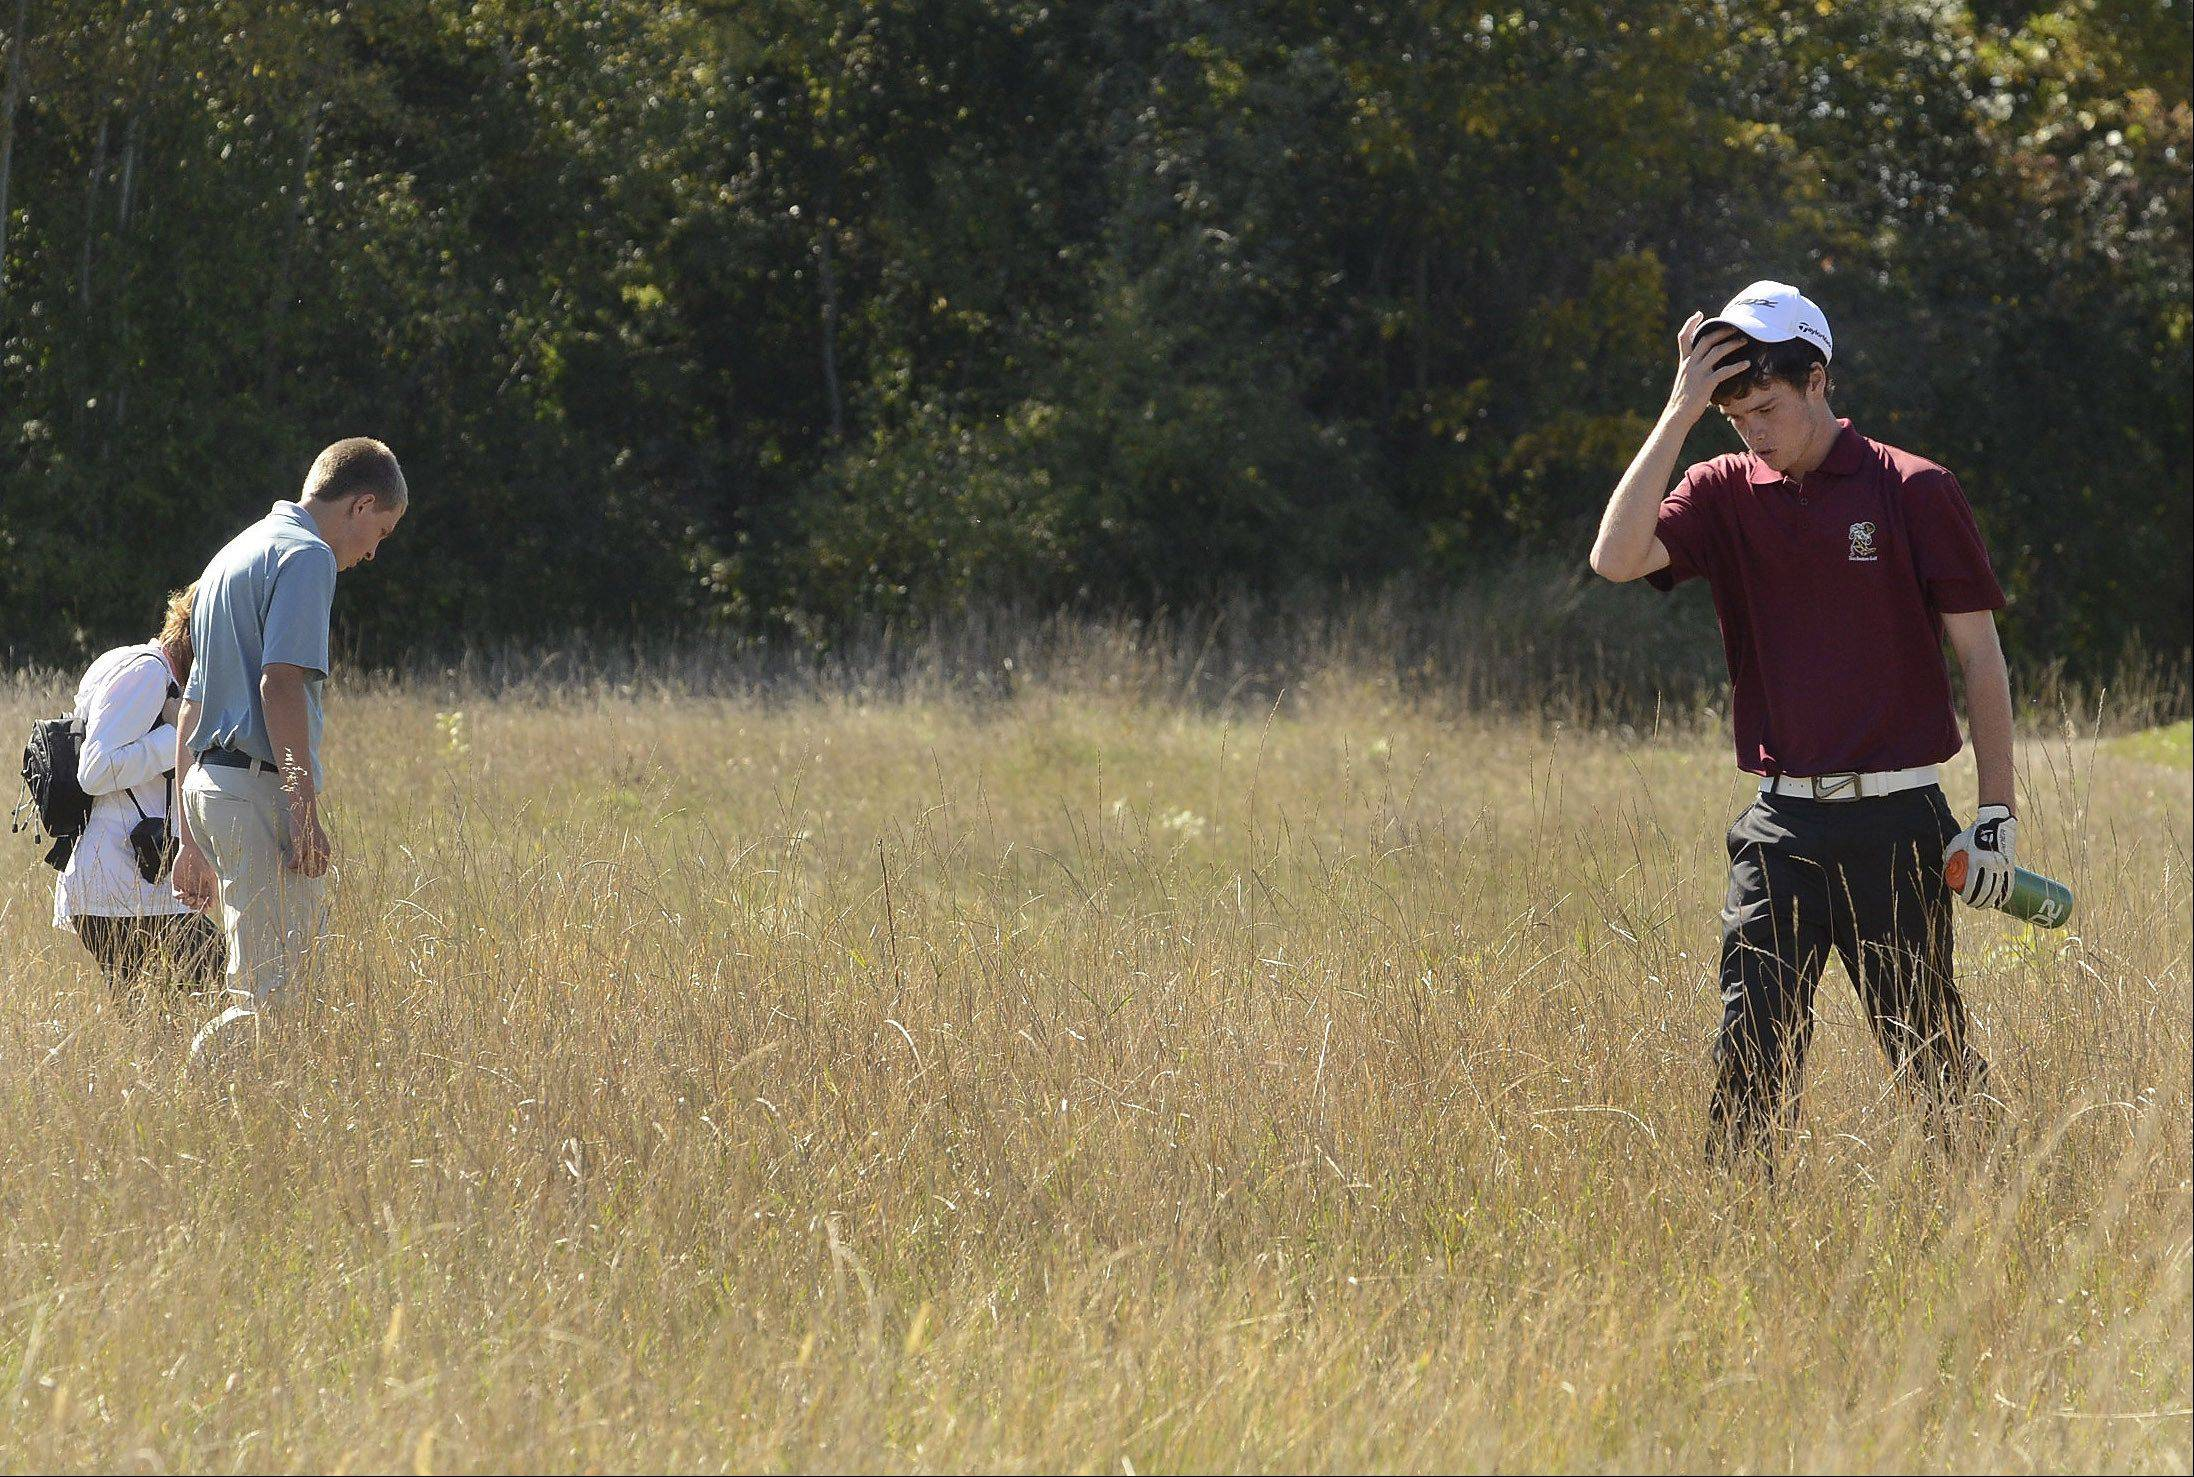 Jeremy Schwab, right, of Zion-Benton looks for his ball in the tall grass on 12, but couldn't find it costing him a stroke during the Class 3A Zion-Benton boys golf regional.